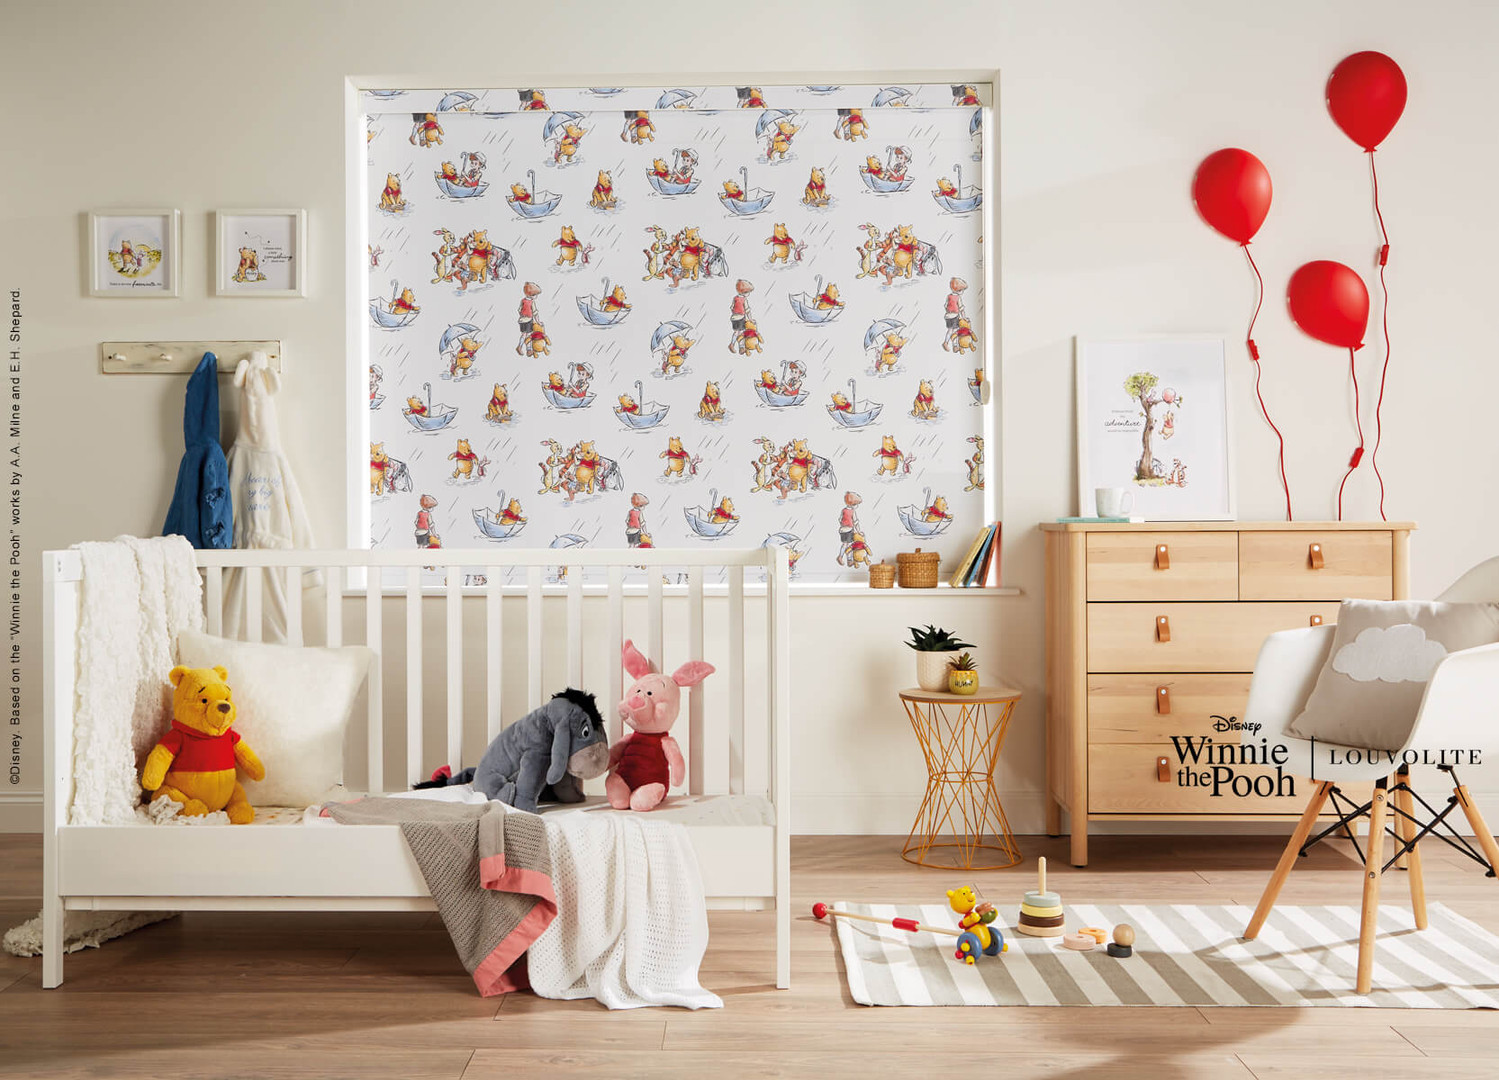 Winniethepooh Roller Blinds